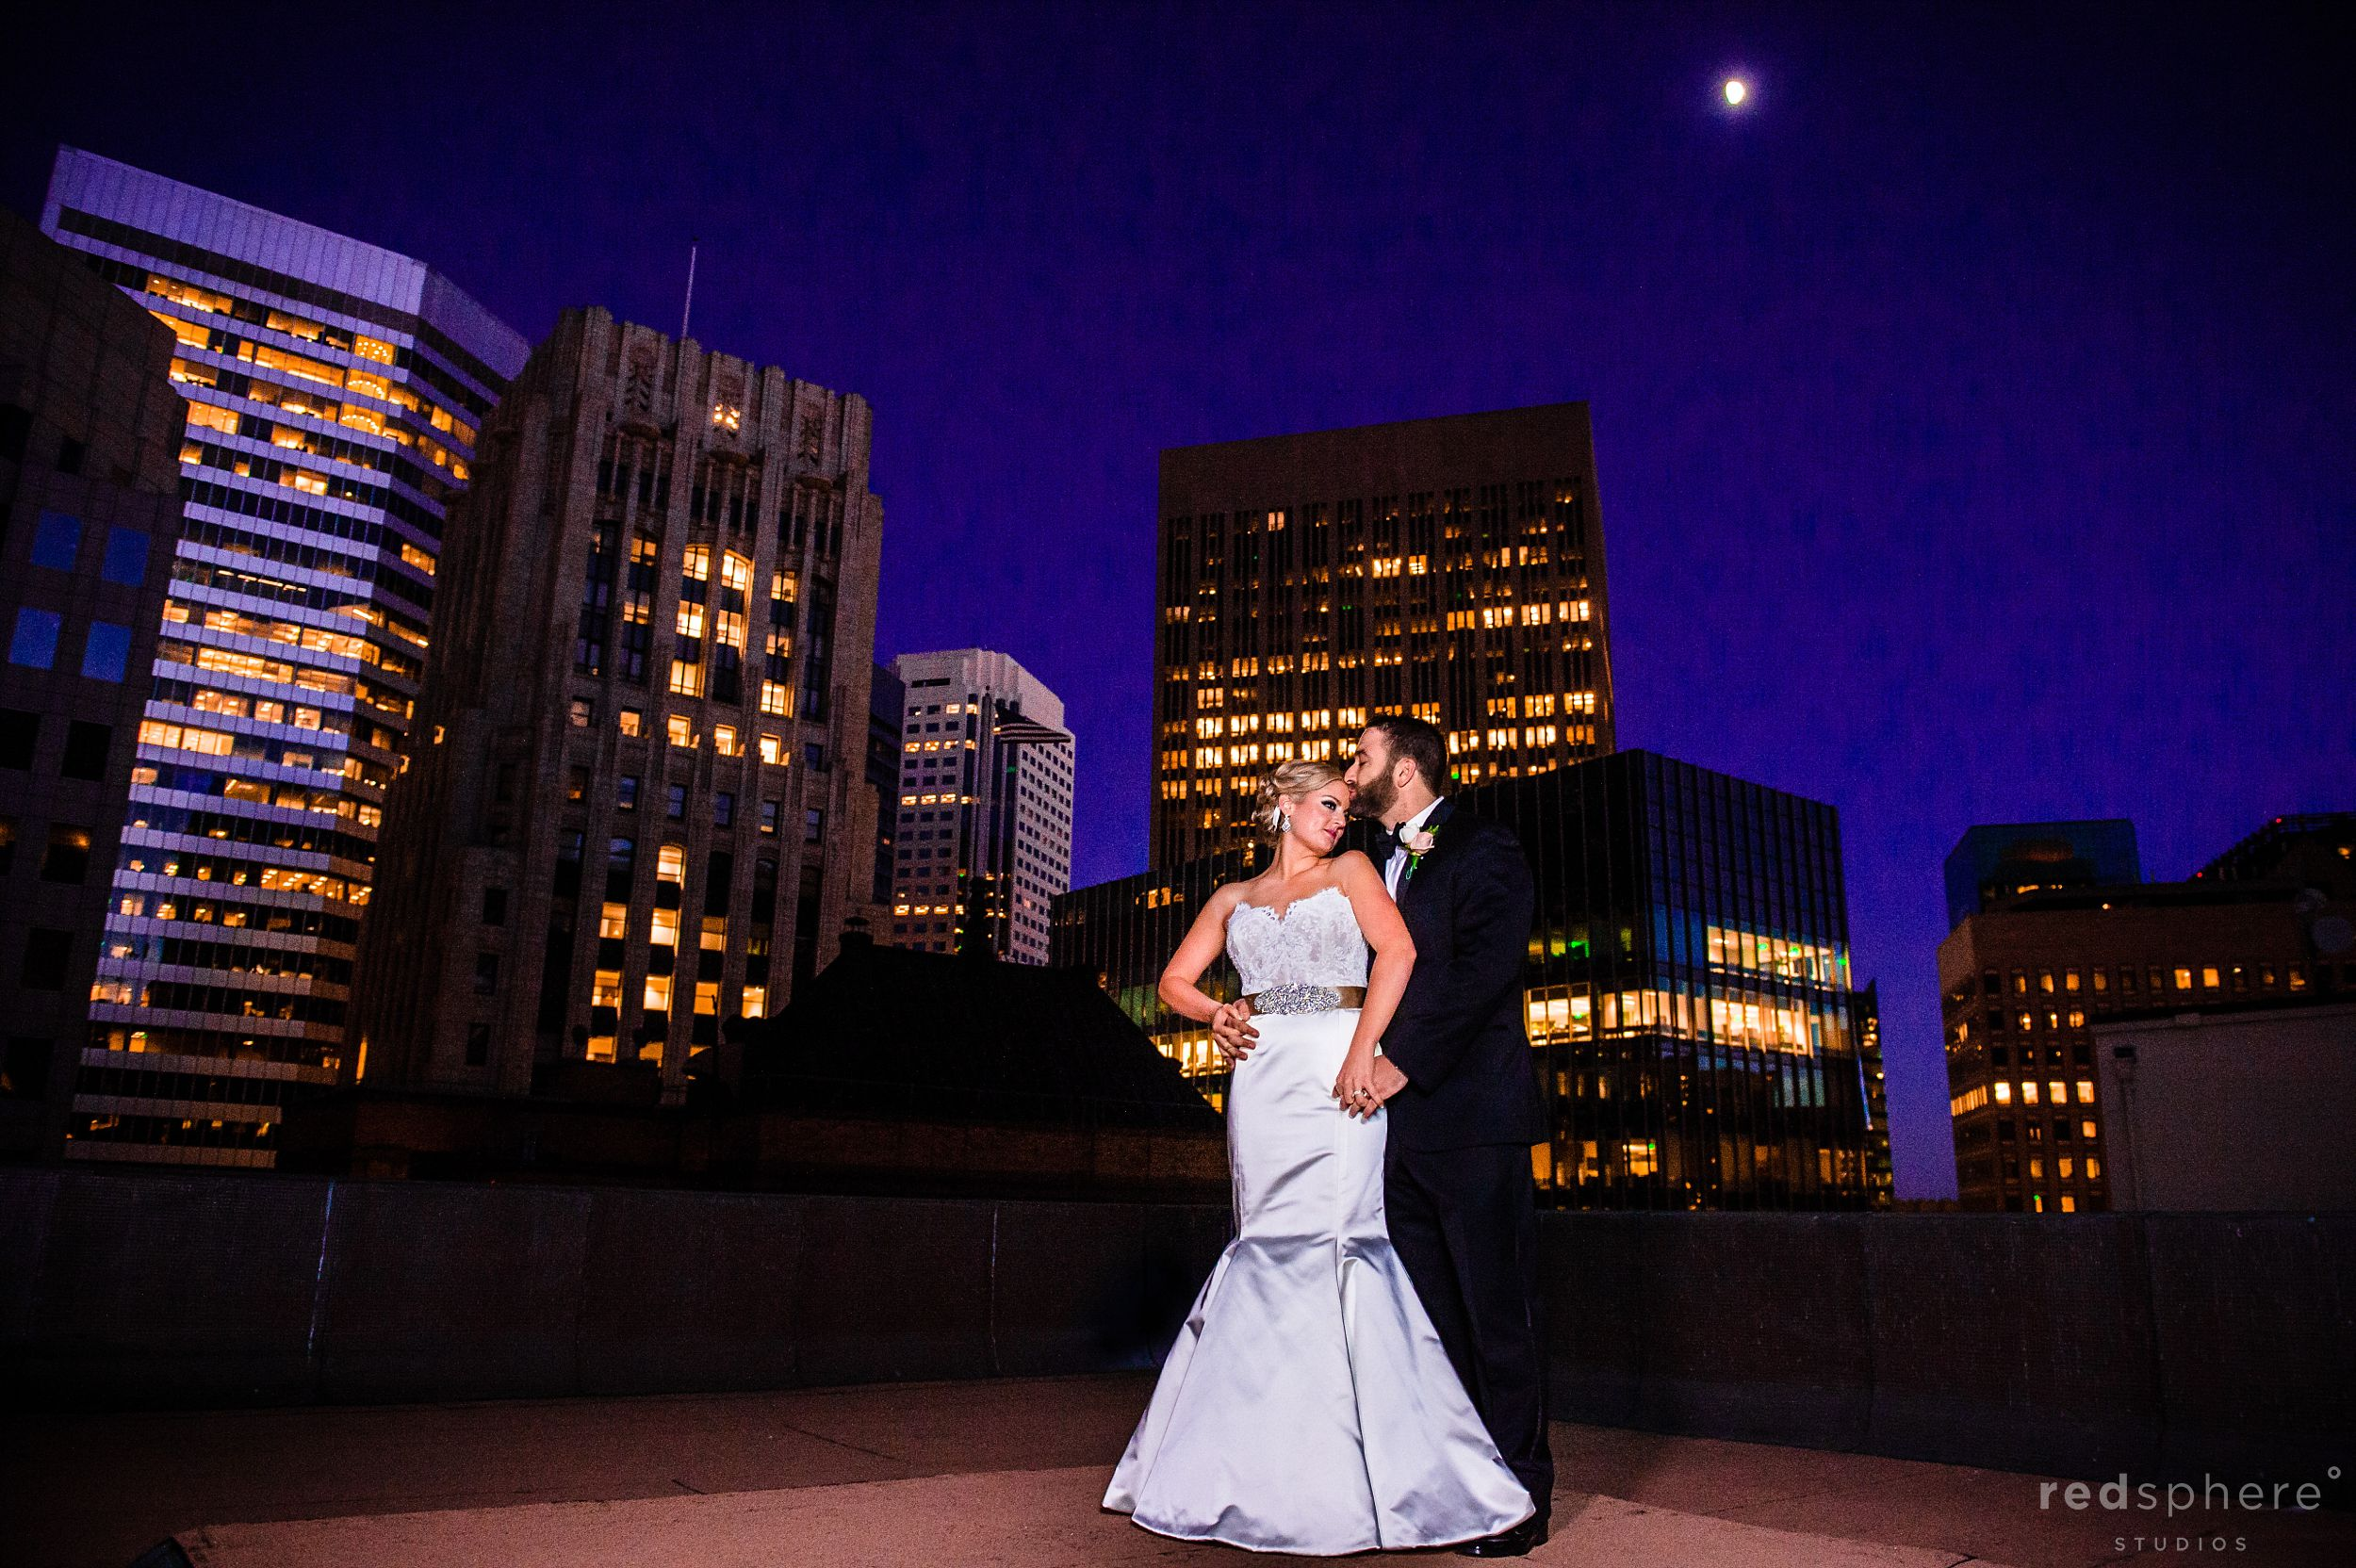 Bride and Groom Wedding Photos at City Club San Francisco, Full Moon, Twilight Hours